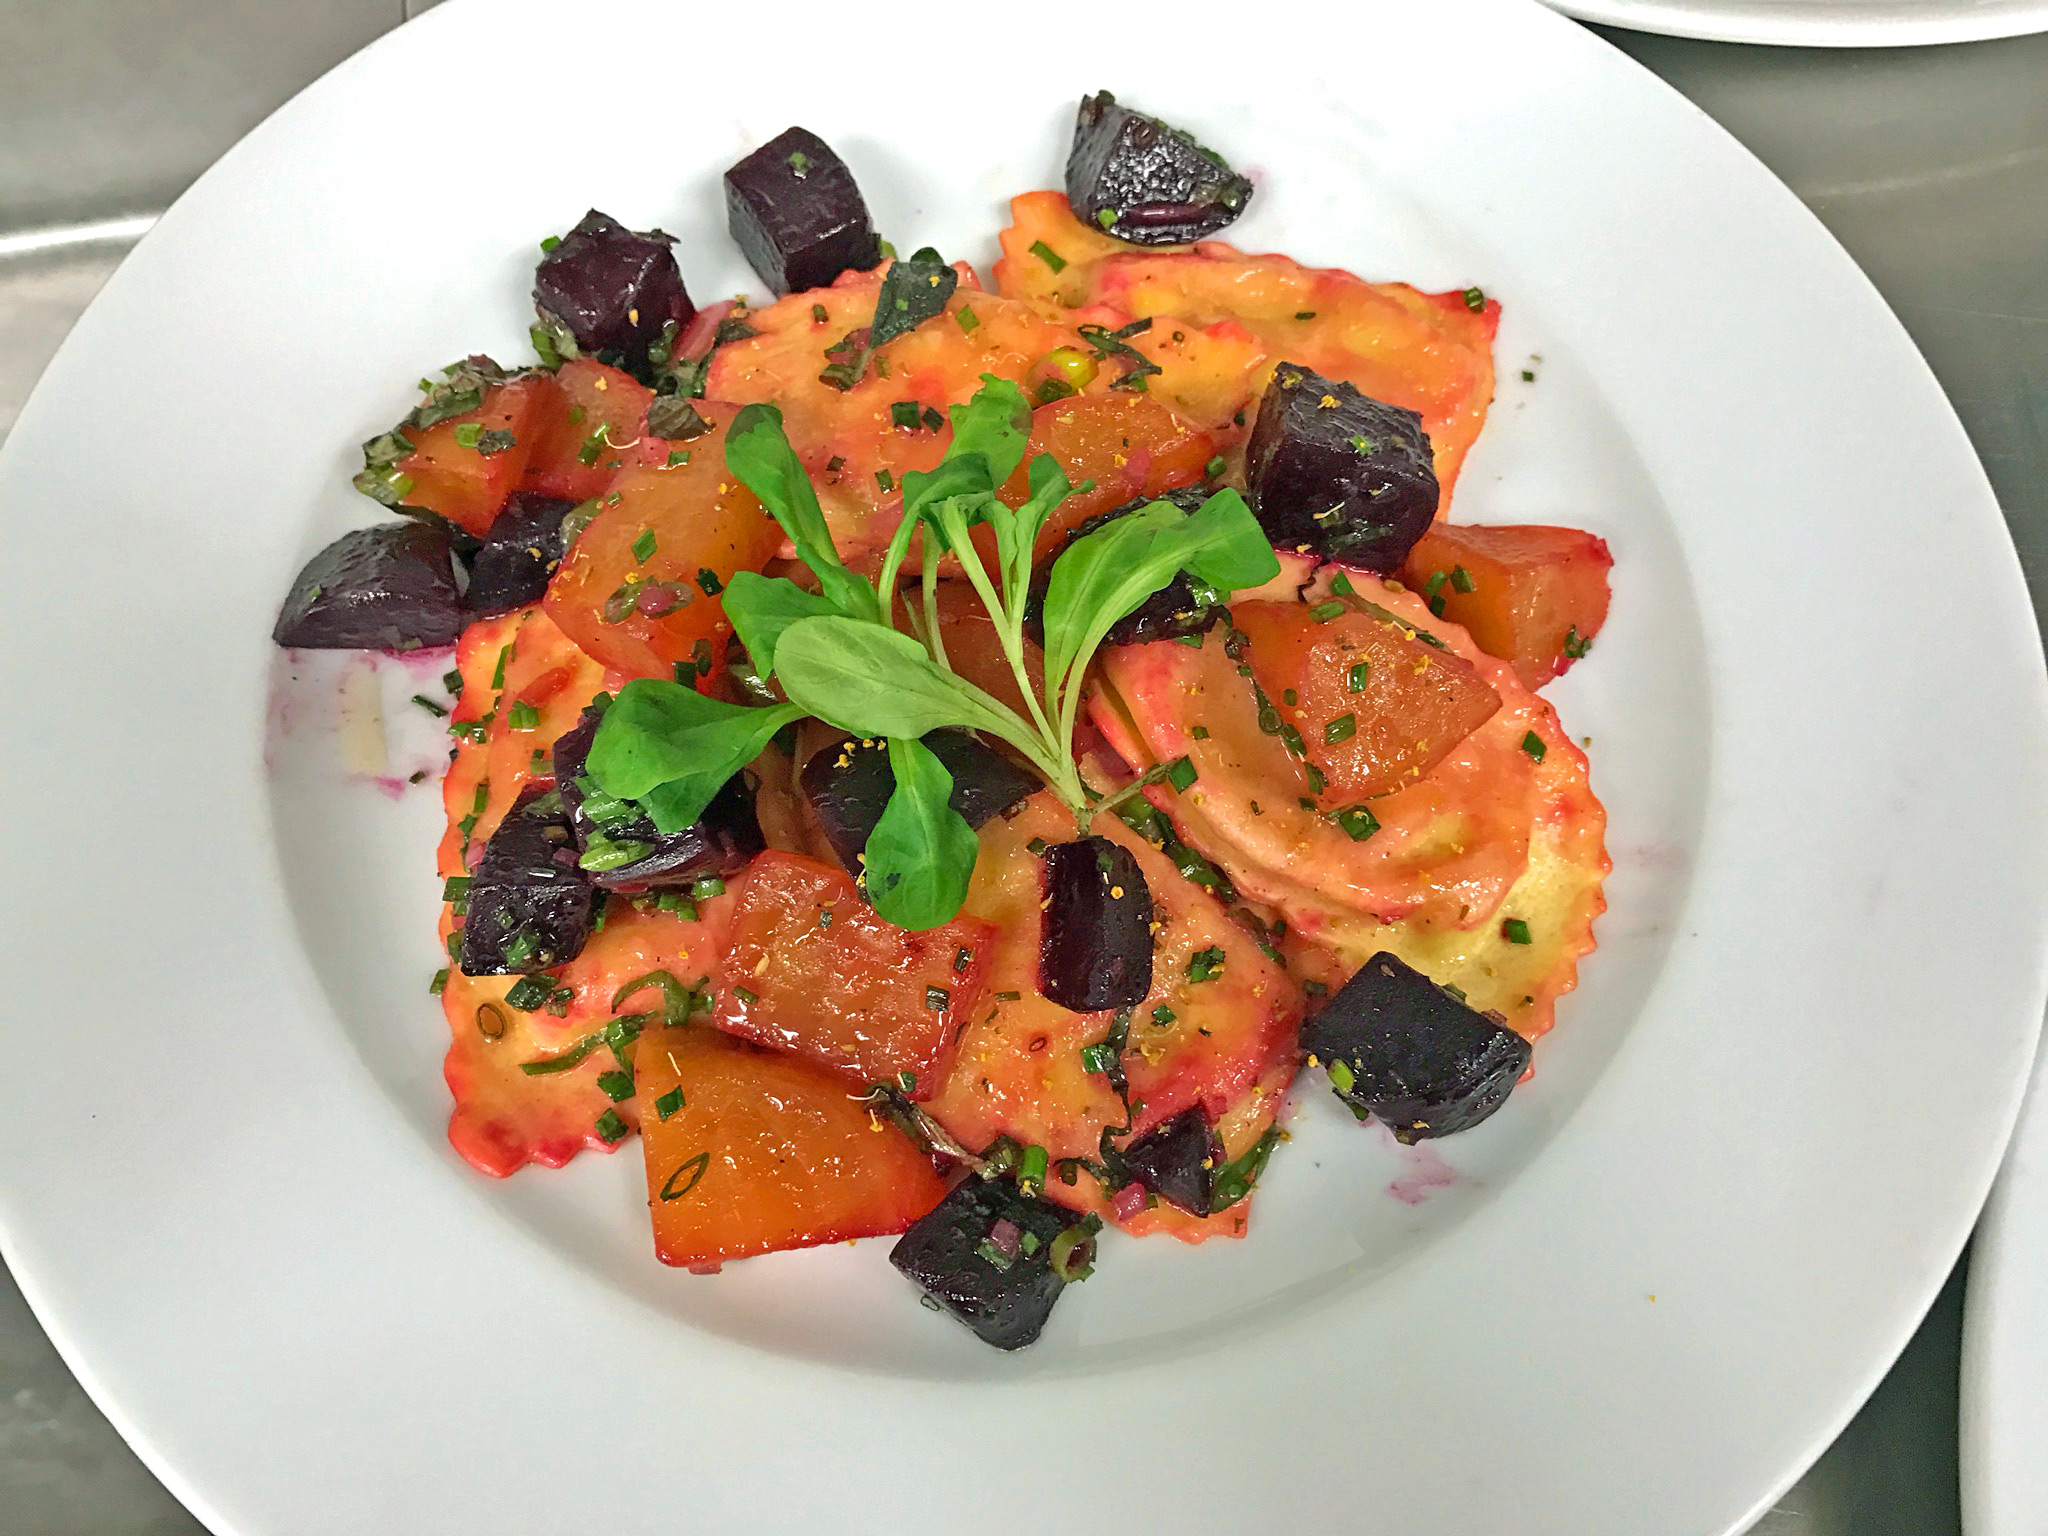 Ricotta & Goat Cheese Ravioli - roasted beets, fennel pollen, sage brown butter